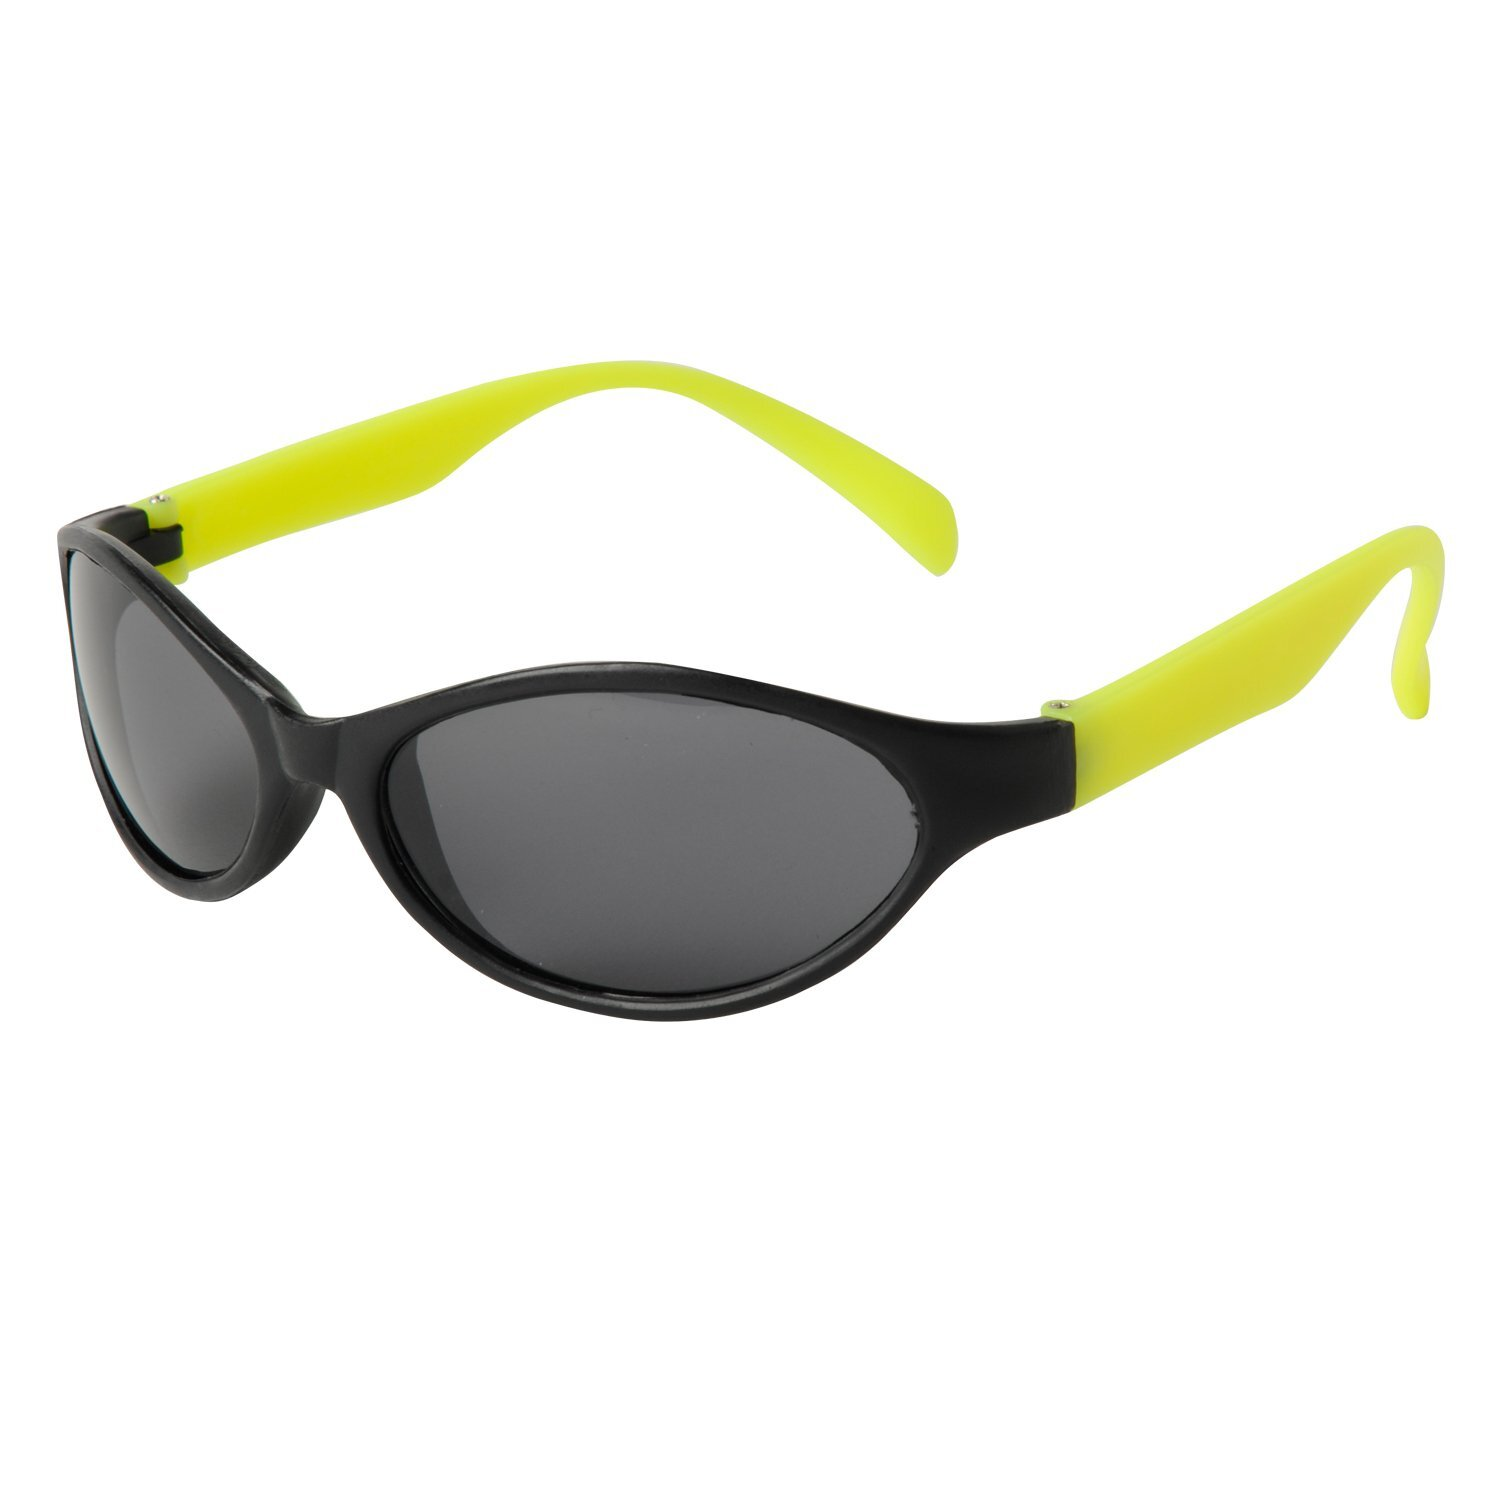 Neon Wrap Sunglasses